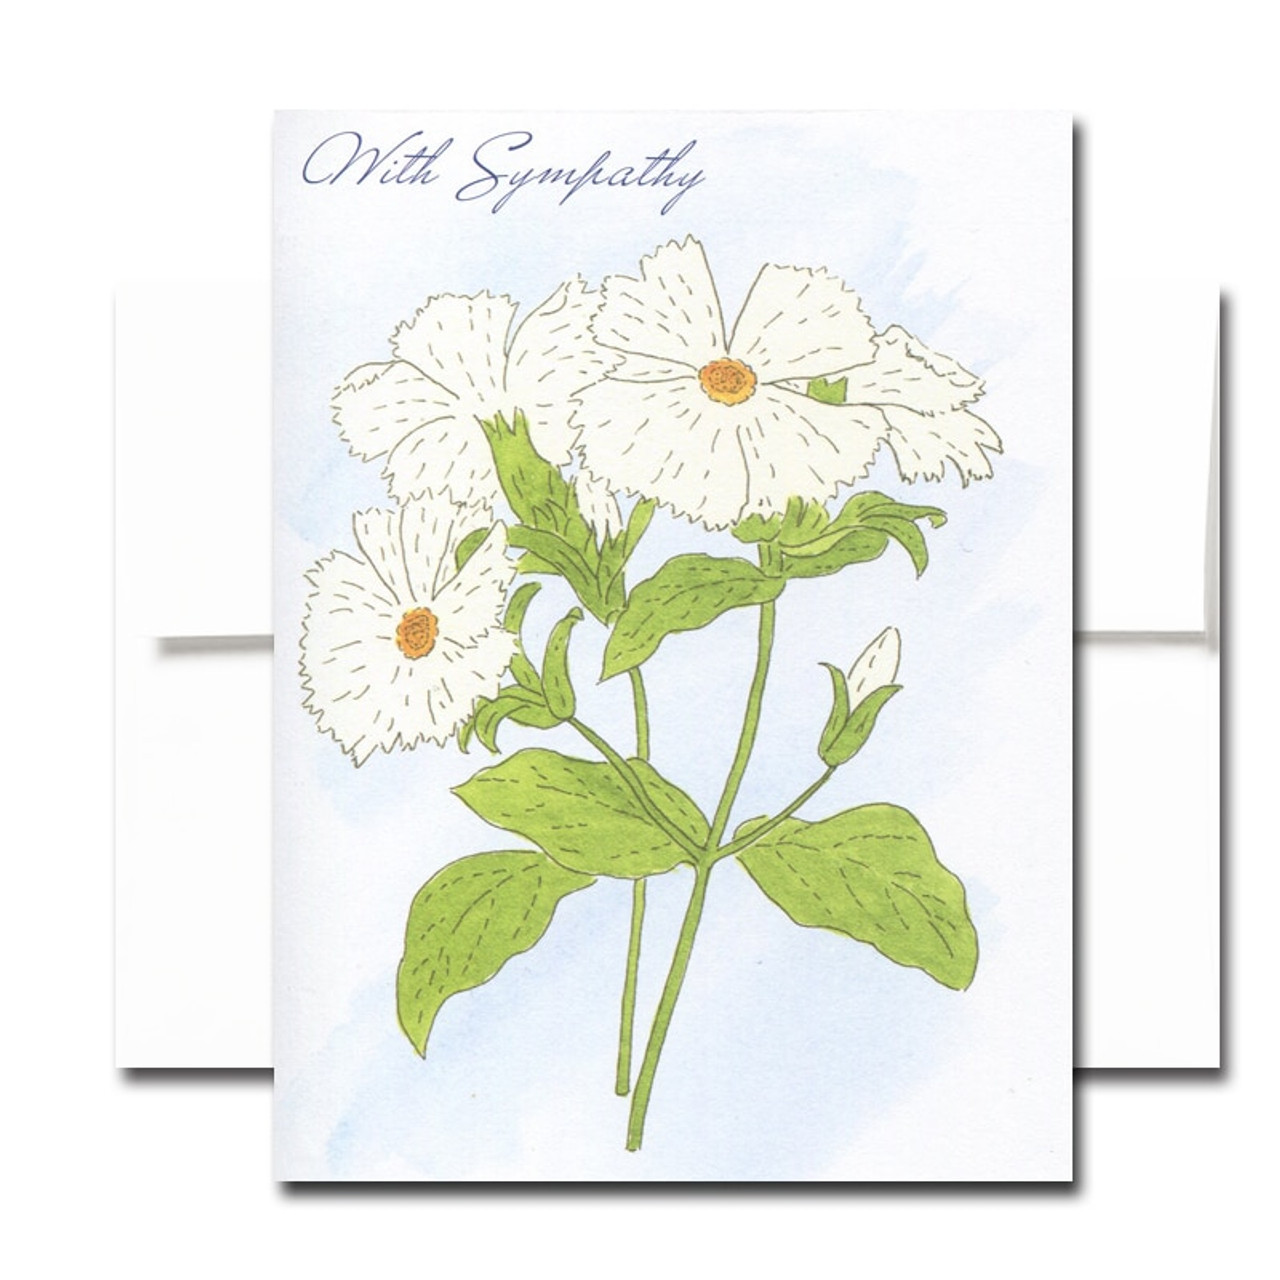 Blank Sympathy Card: Campion. Hand-painted watercolor illustration.